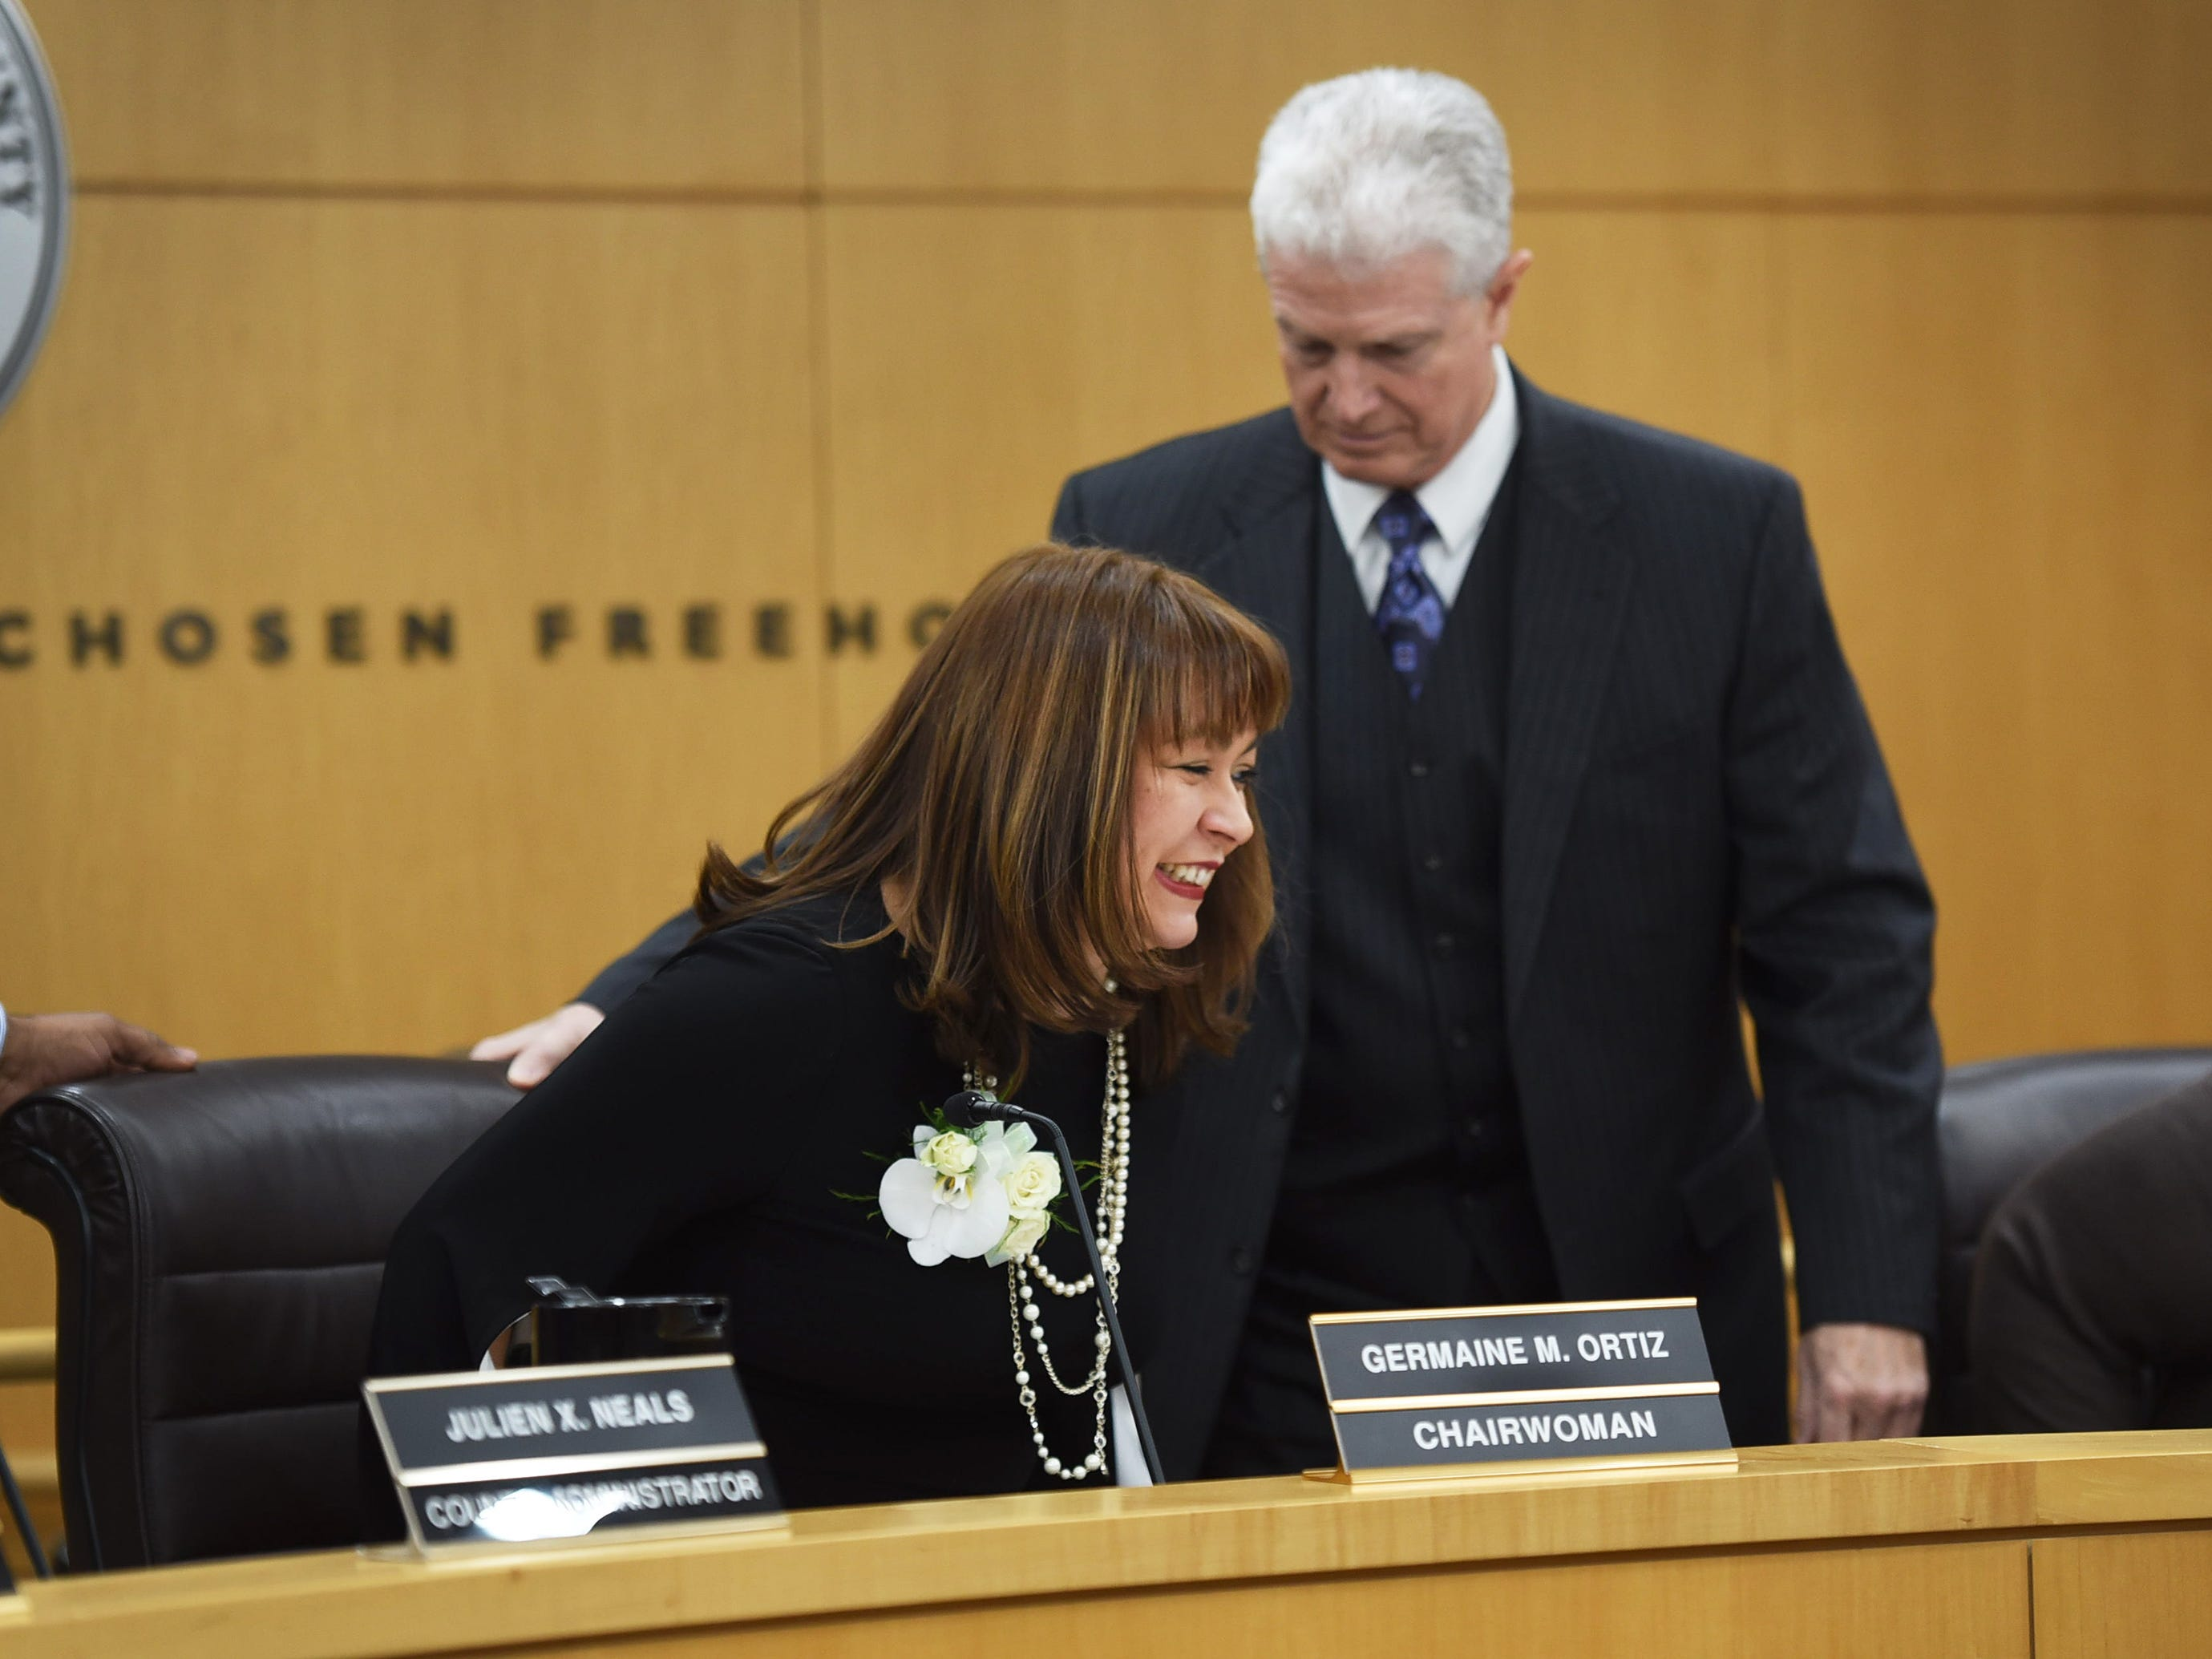 Germaine Ortiz is escorted by Edward Florio, Freeholder Counsel to be seated in the chair of Chairwoman after being sworn in as a Chairwoman by Senator Bob Menendez (not shown) during the annual Bergen County freeholder board's reorganization meeting at Bergen County Plaza in Hackensack on 01/07/19.